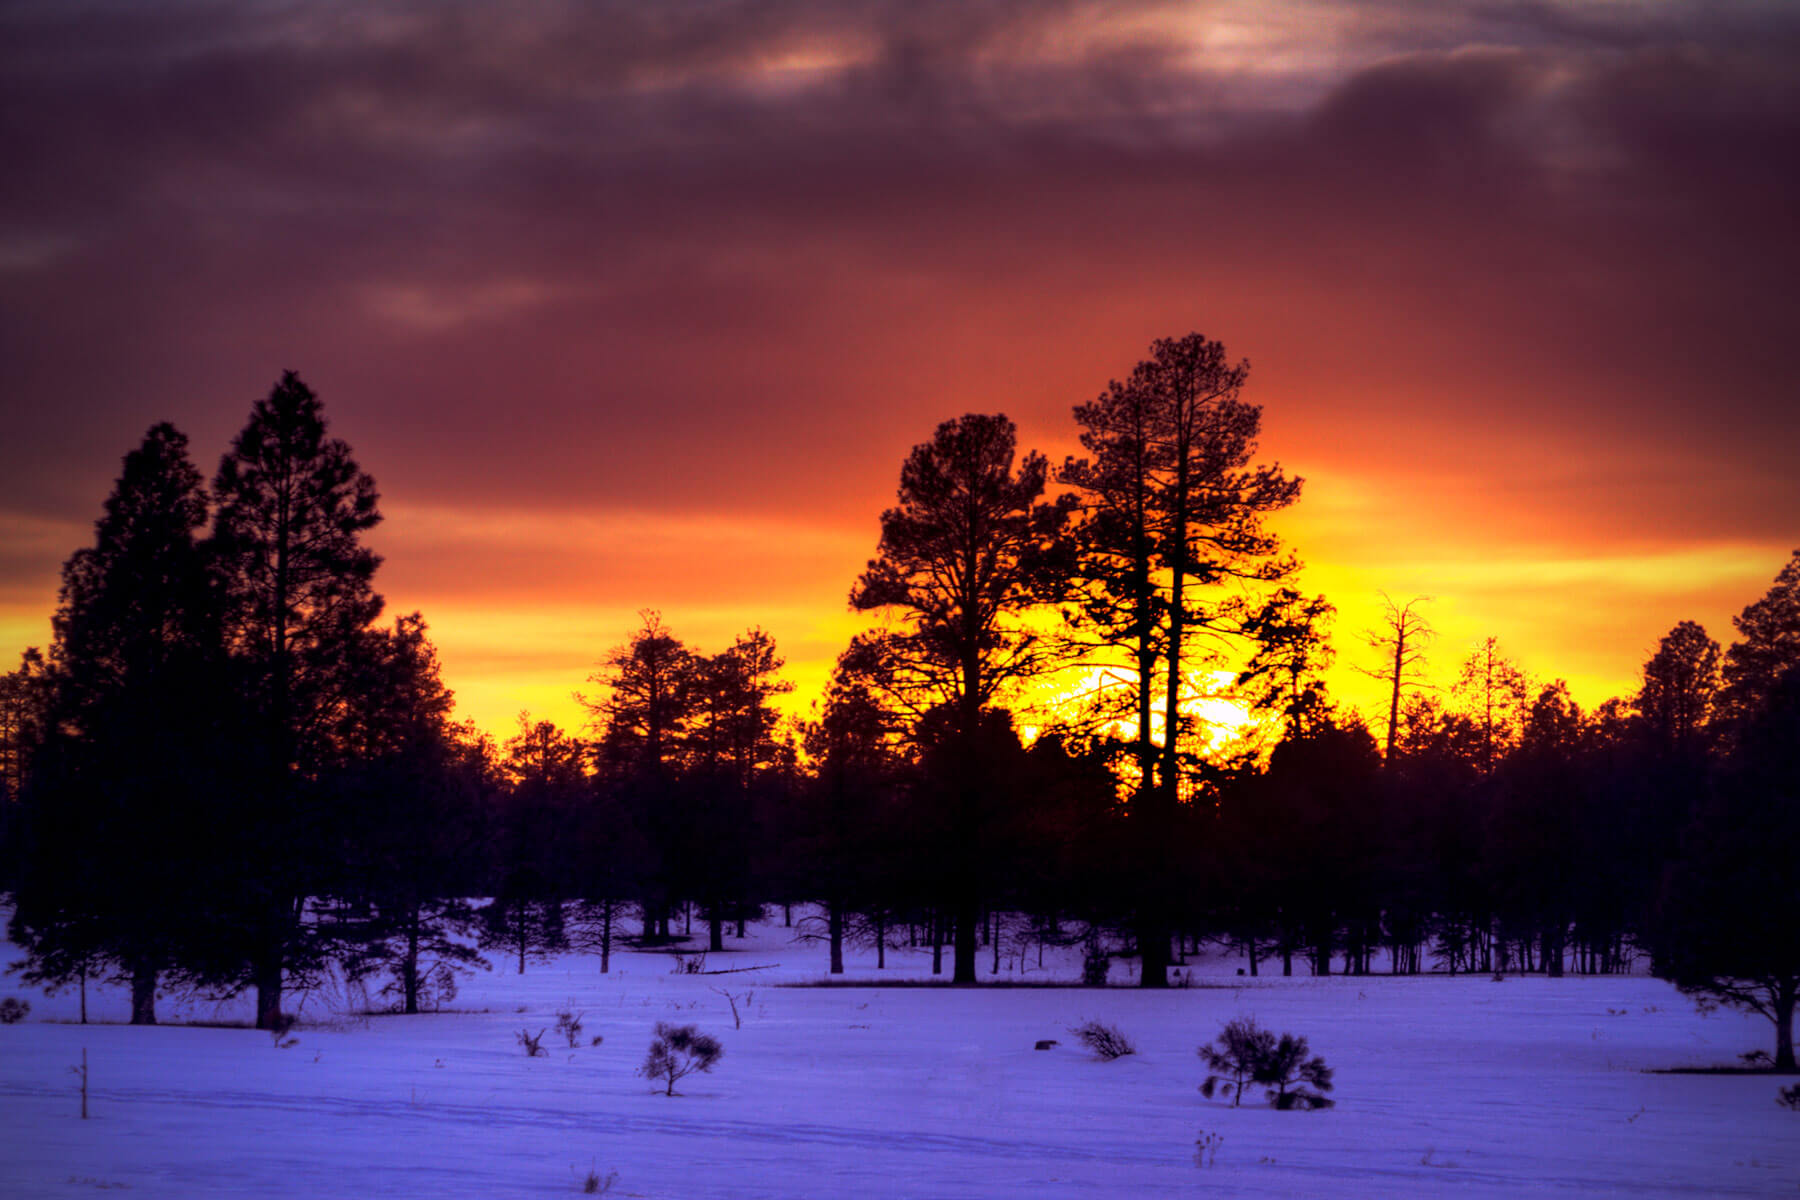 A picture of Arizona's sunset near Marshall Lake, Flagstaff.